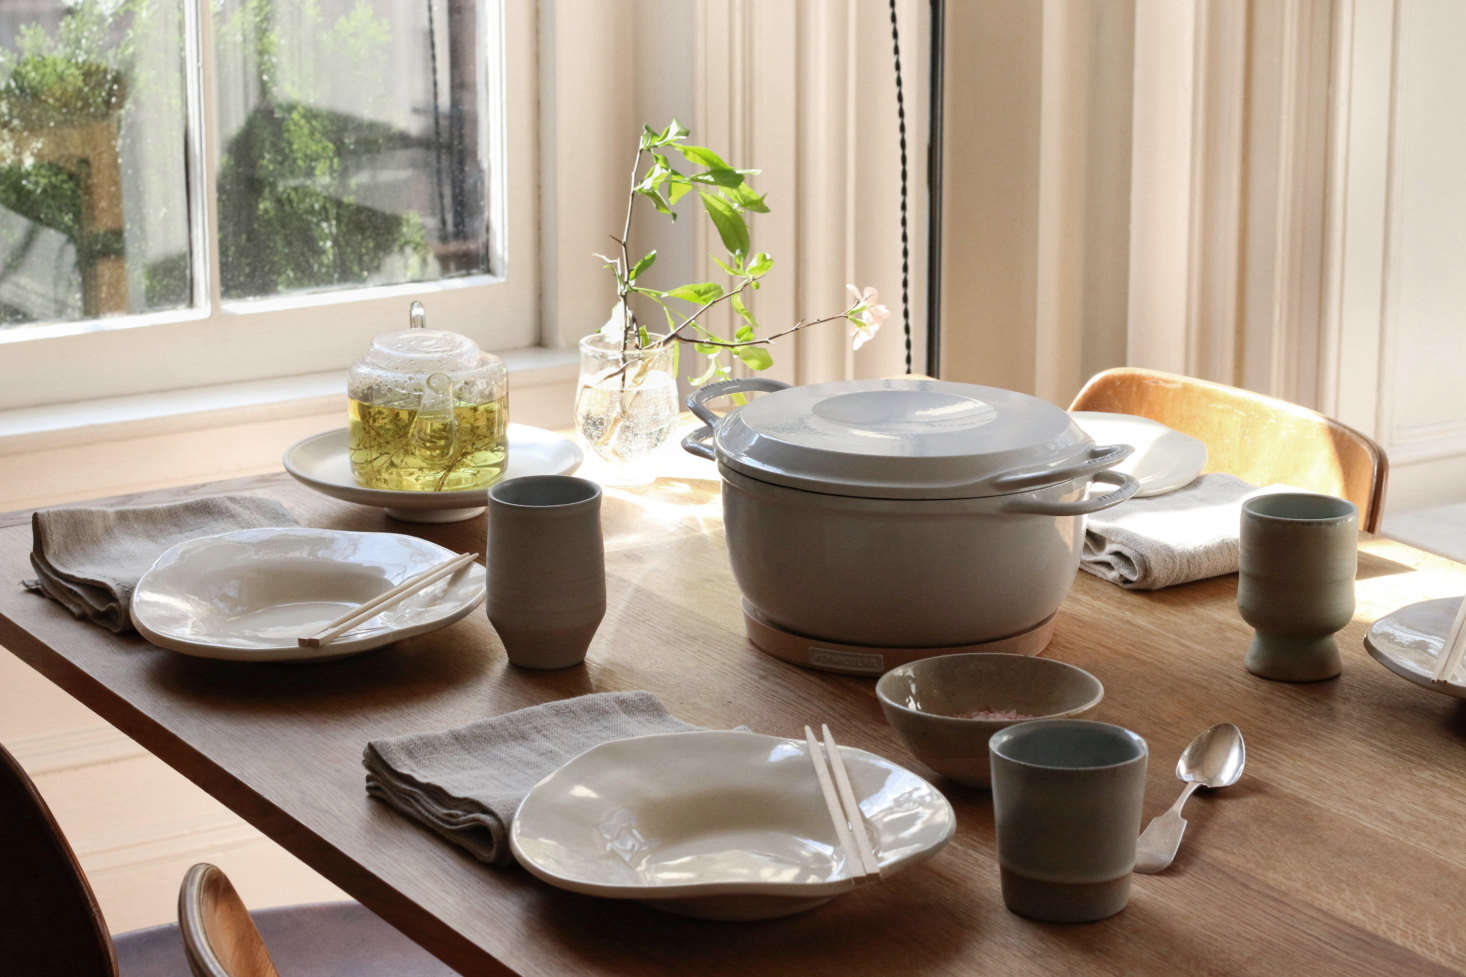 The table set for lunch. The Classic Dinner Plates in gloss white are by Chico, CA-based ceramicist Alex Marshall.